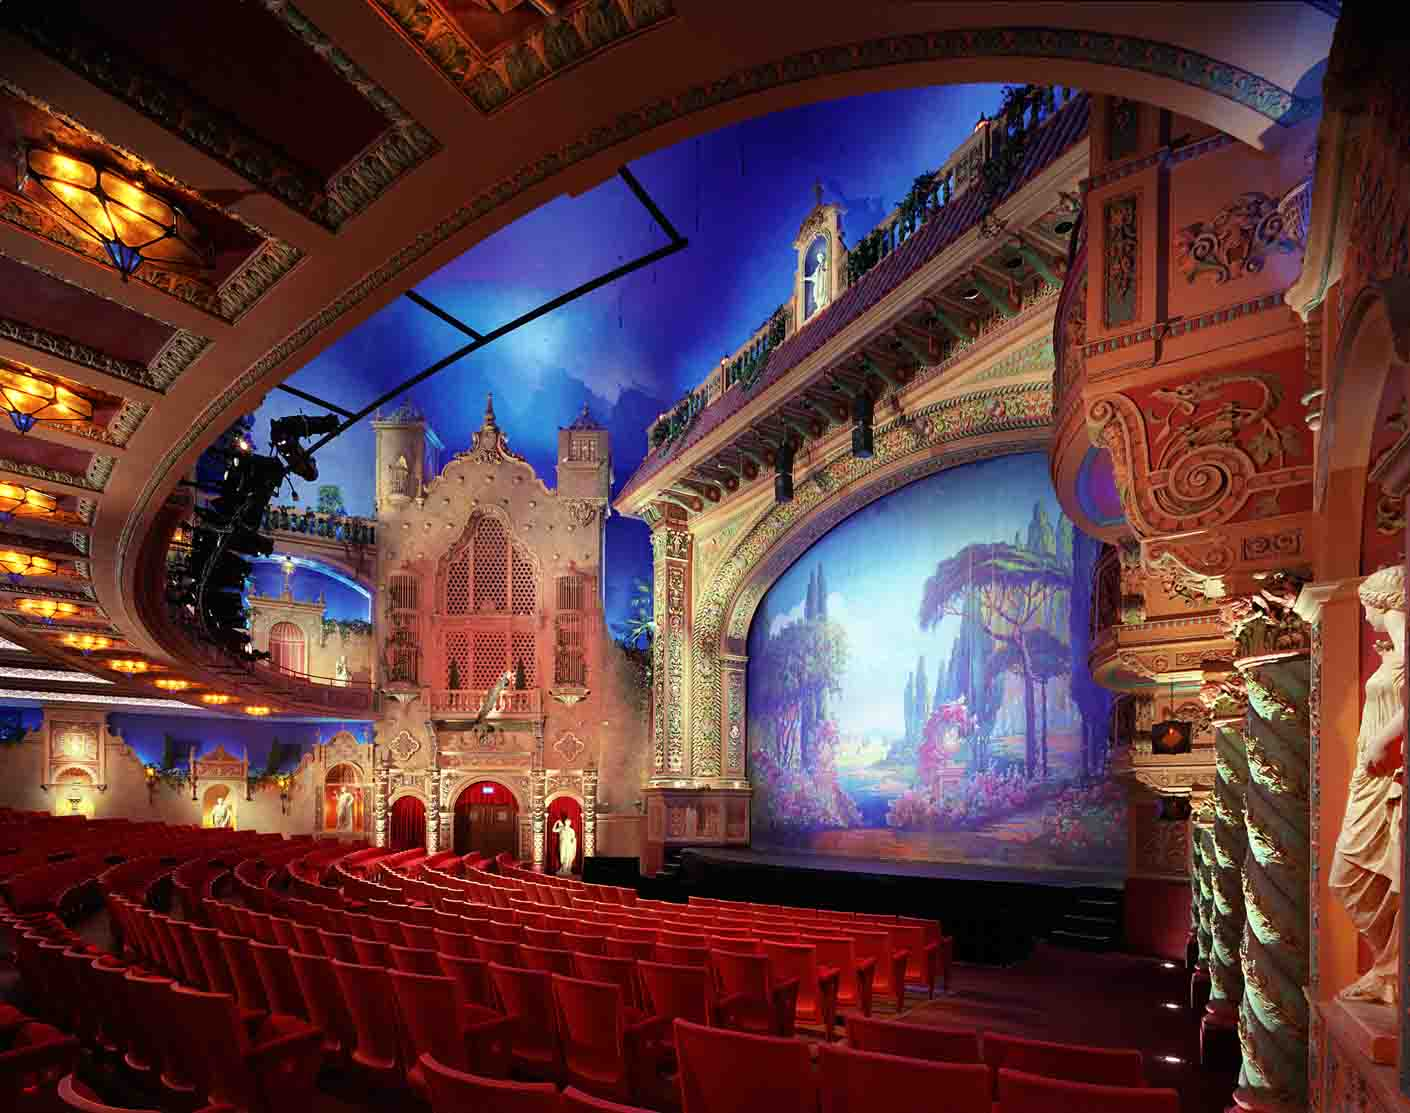 Visit These 10 Theaters In Florida For An Unforgettable Show